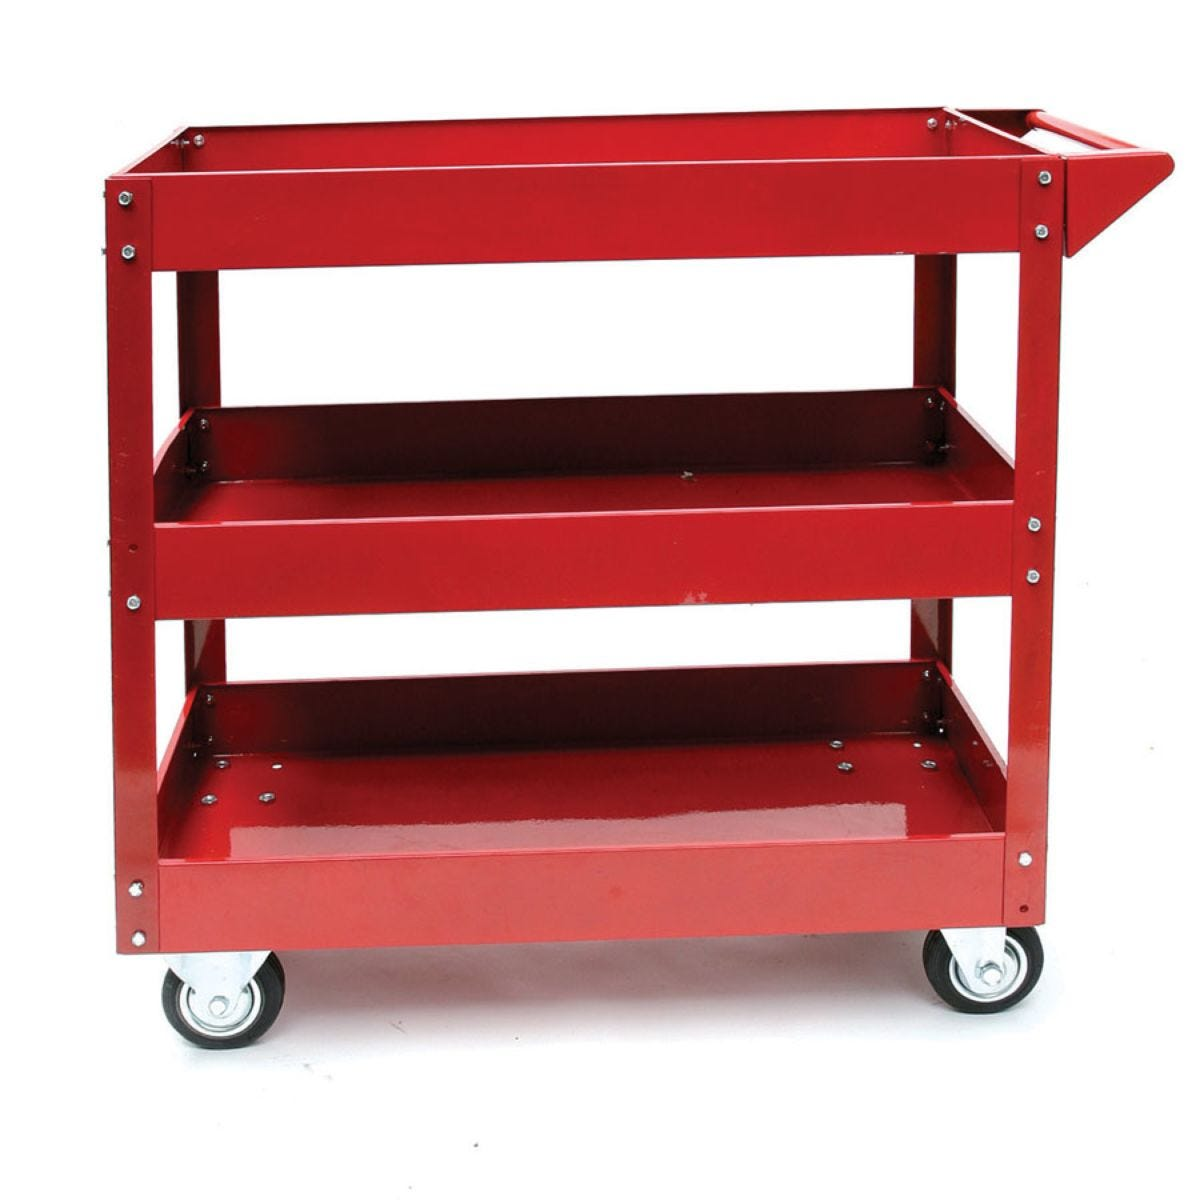 Hilka 3 Tier Service Cart